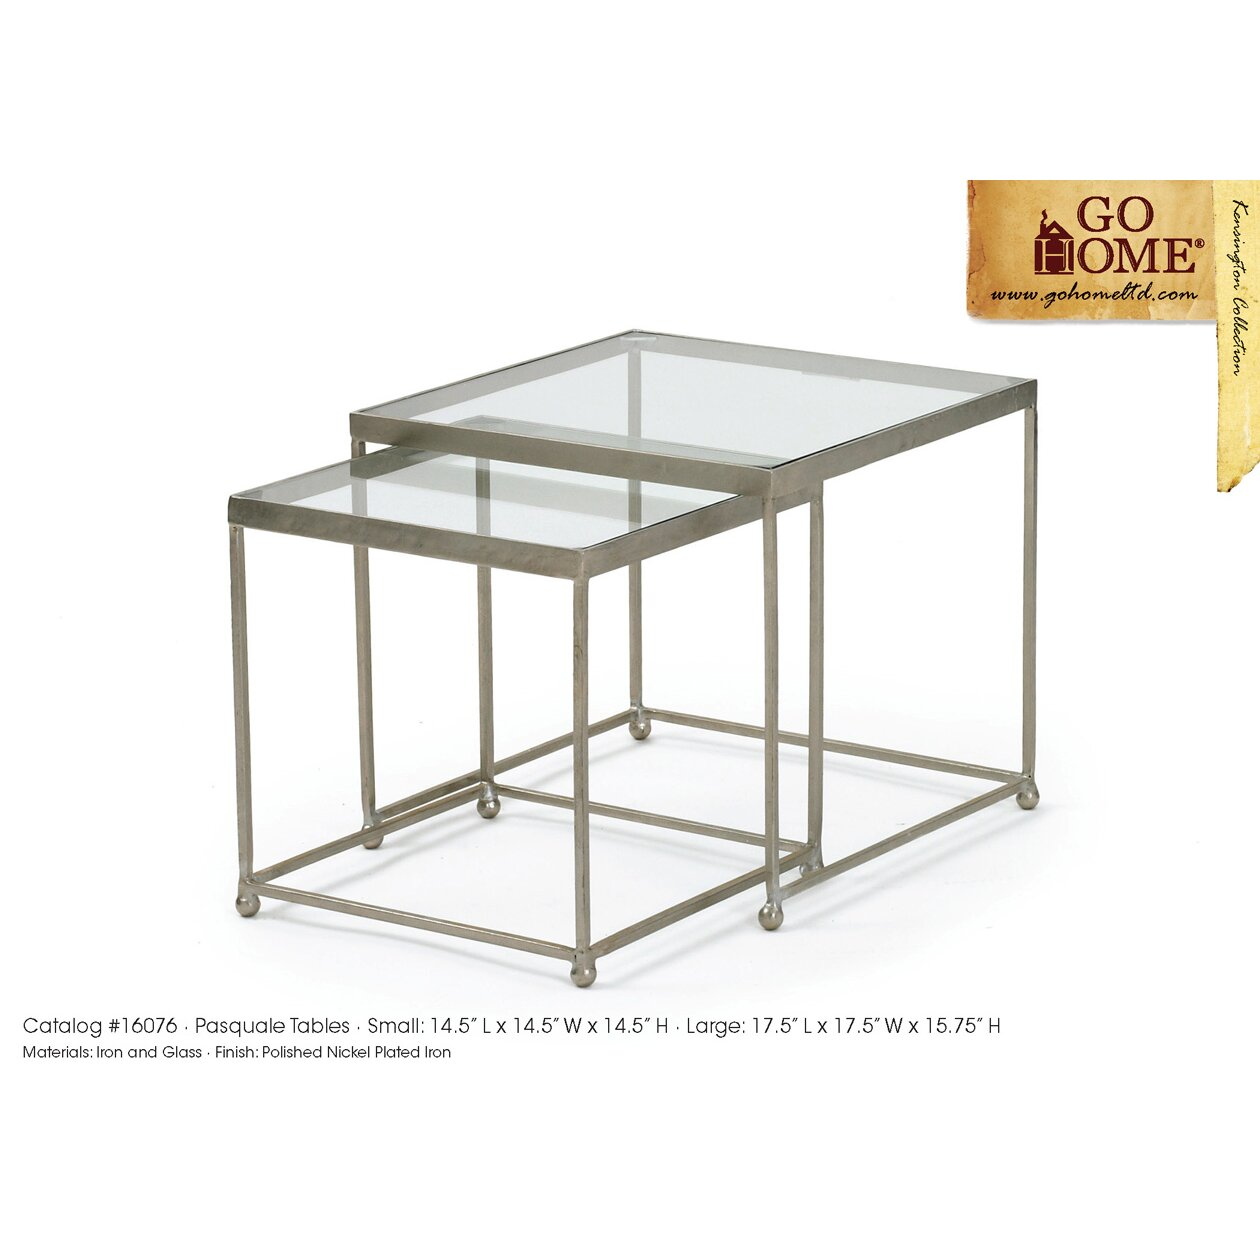 2 Piece Pasquale Coffee Table Set